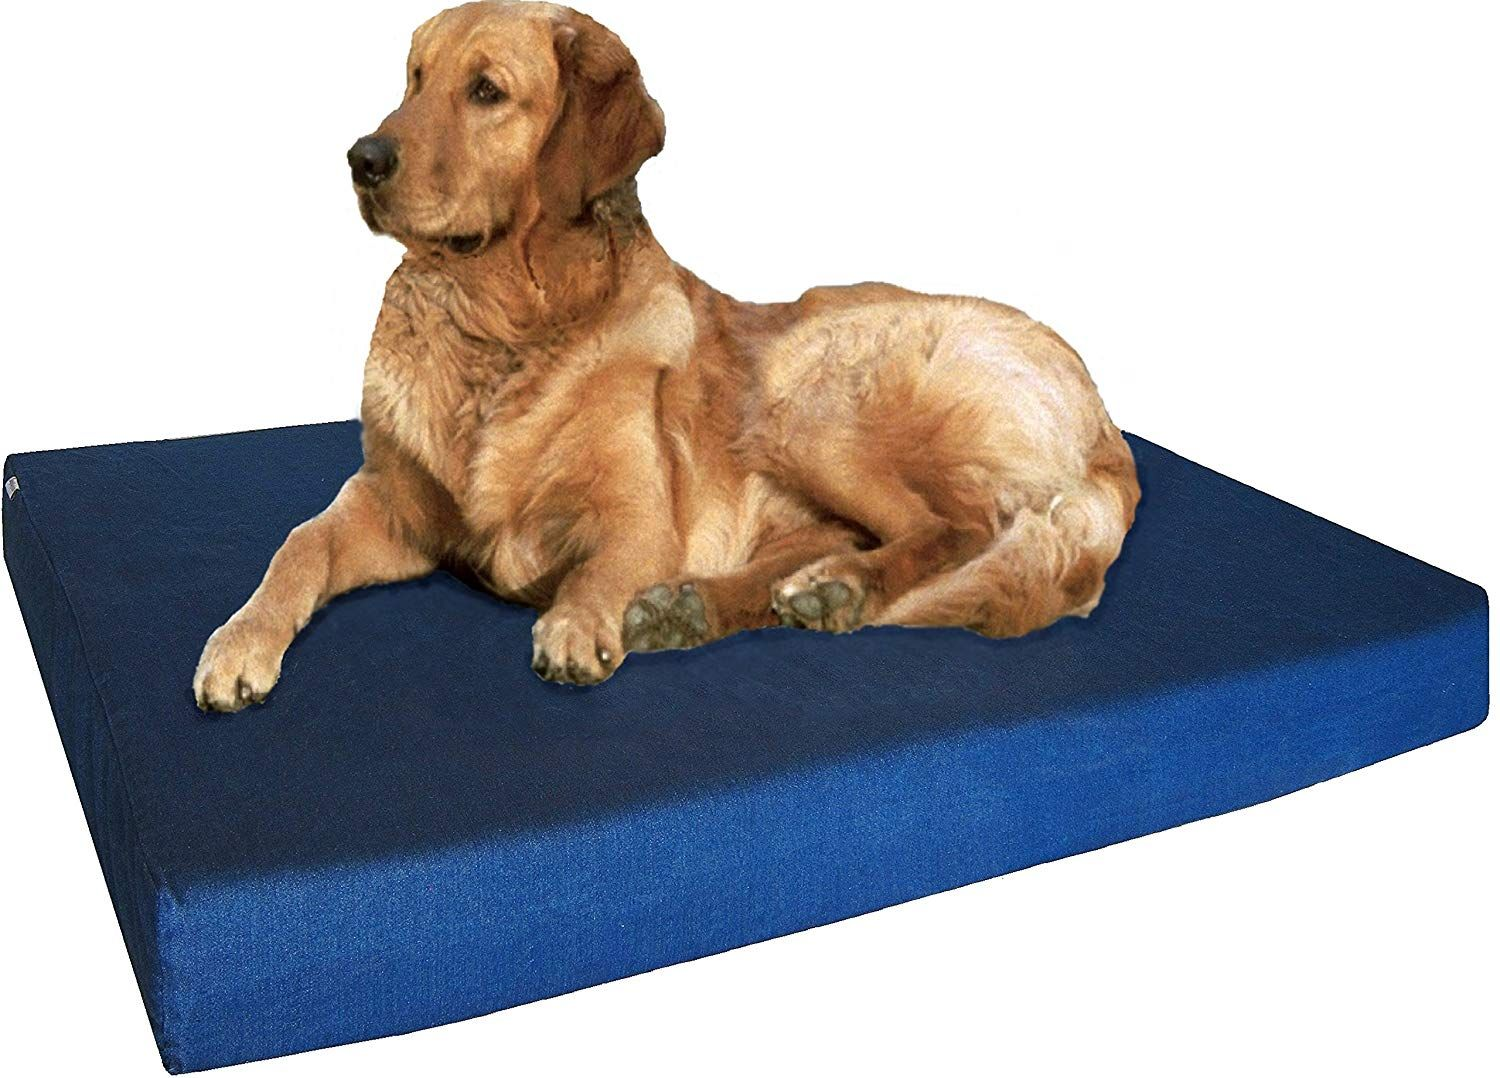 Dogbed4less Heavy Duty Orthopedic Memory Foam Pet Bed with